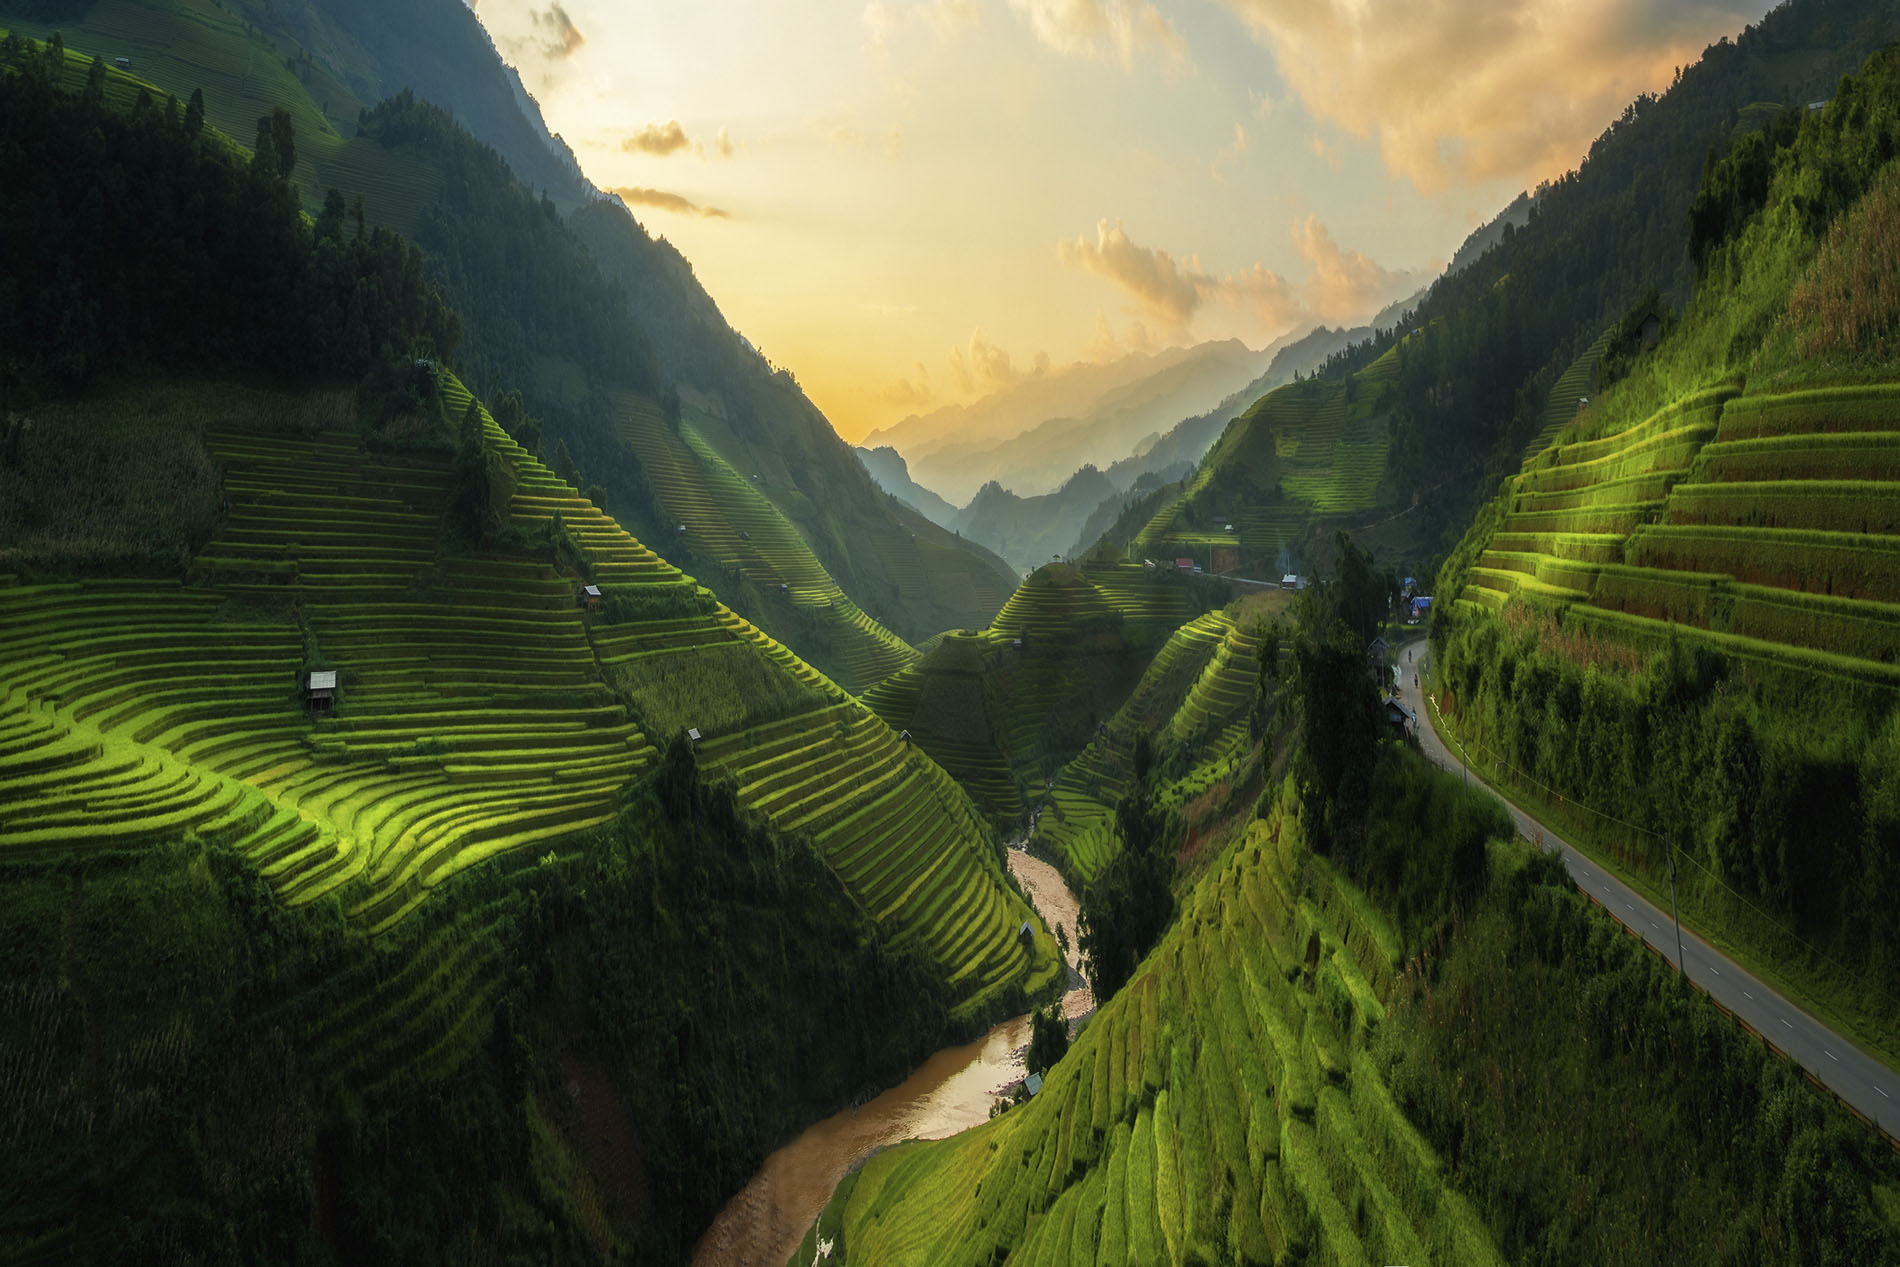 Vietnam rice fields